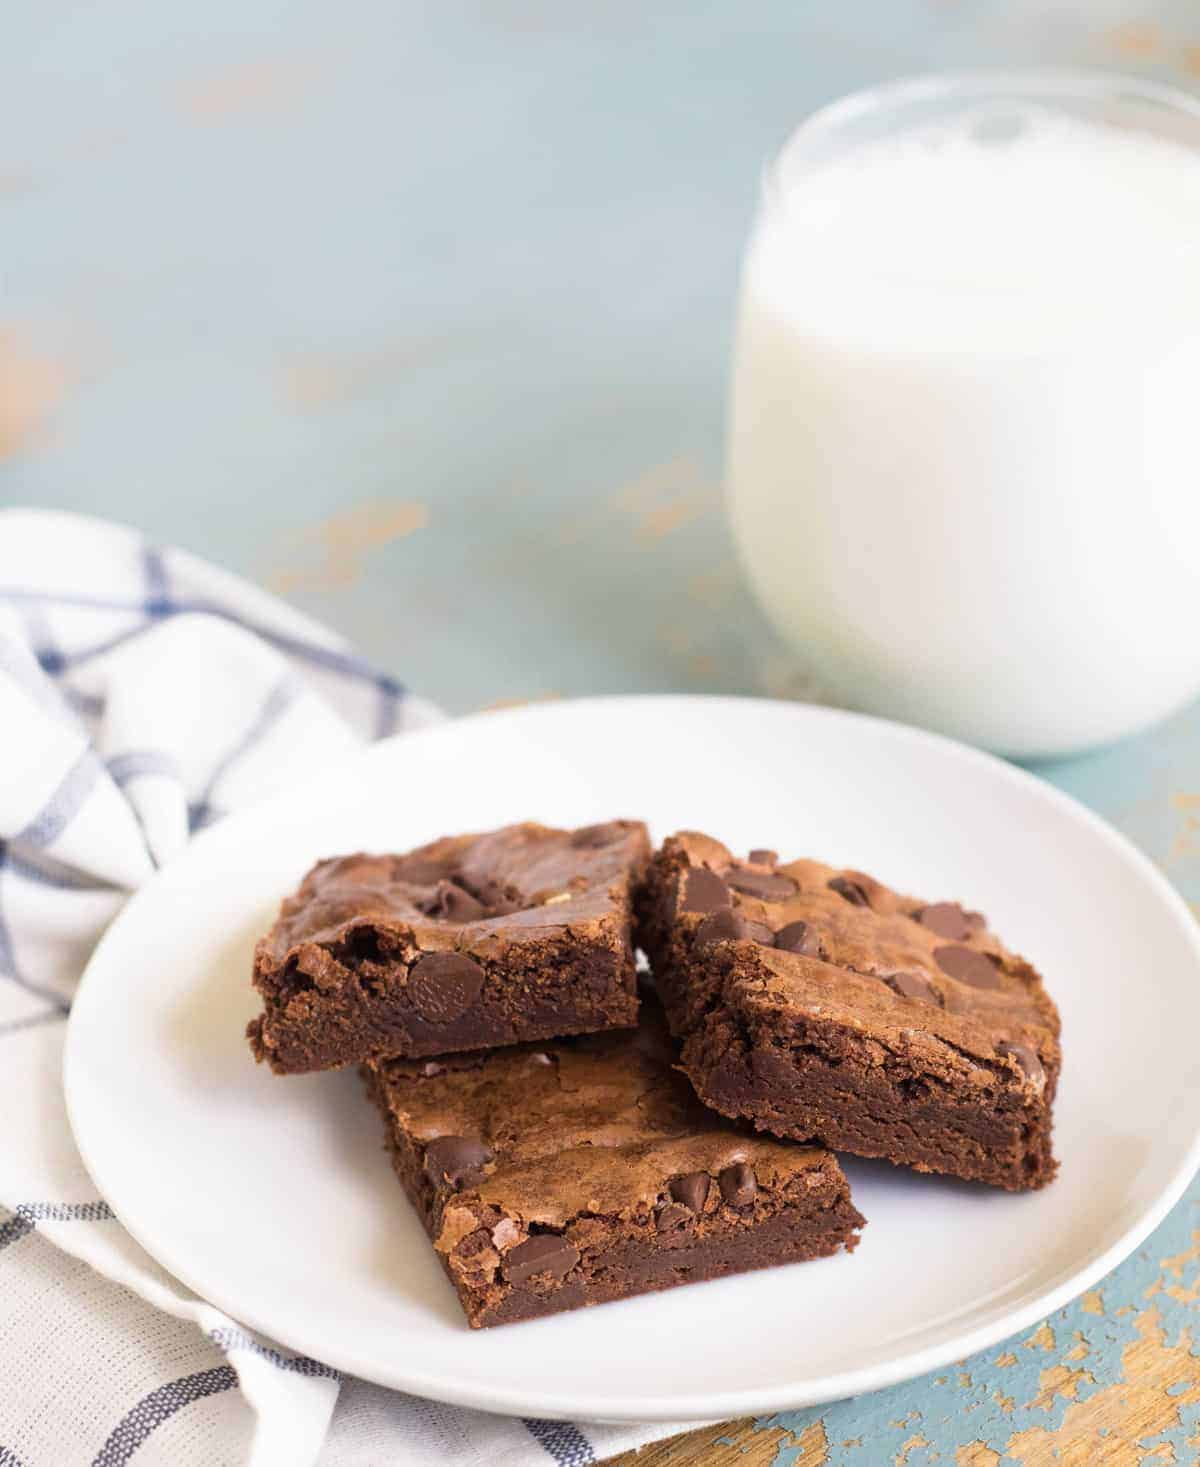 Image of Three Perfect Brownies on a Plate